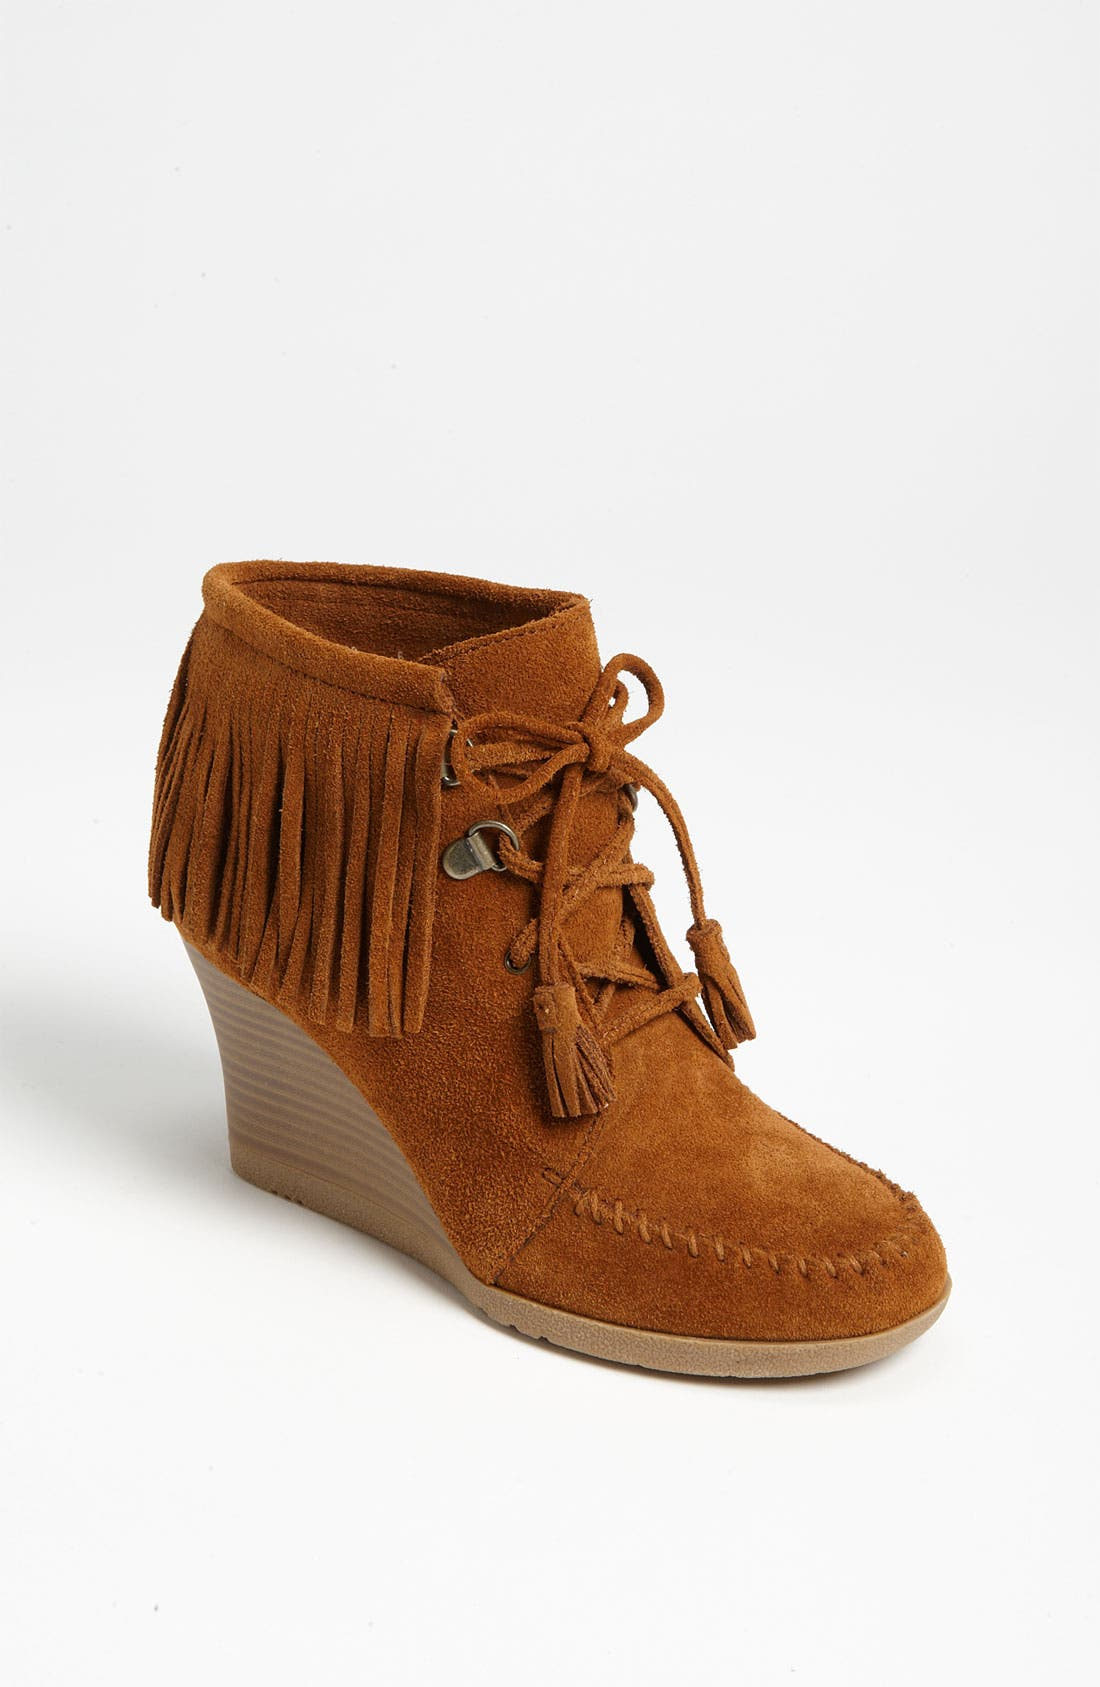 Alternate Image 1 Selected - Minnetonka Lace-Up Fringe Ankle Boot